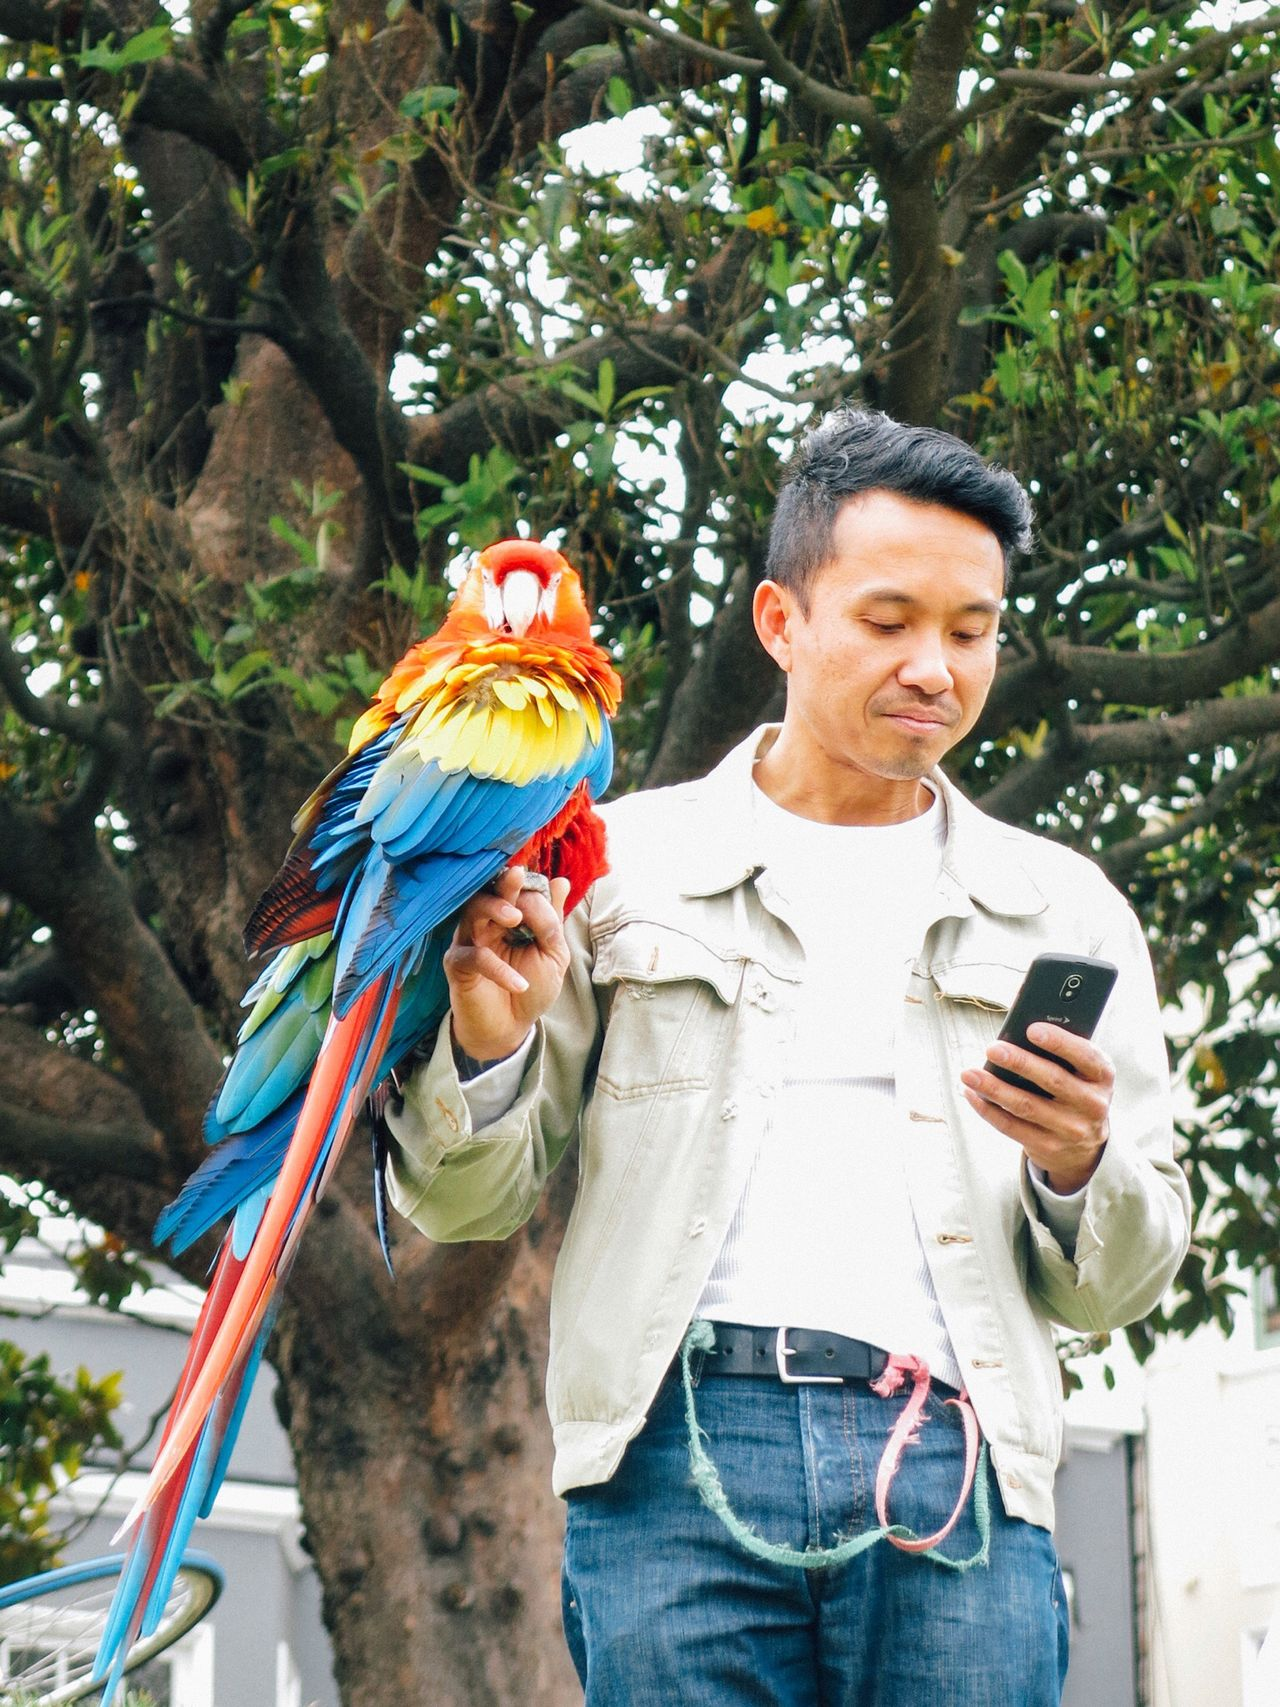 The guy with the bird... Dolores Park San Francisco People Watching Texting Eye4photography  RePicture Masculinity Picturing Individuality Bird Animal Themes Multi Colored Snap a Stranger Mobile Conversations